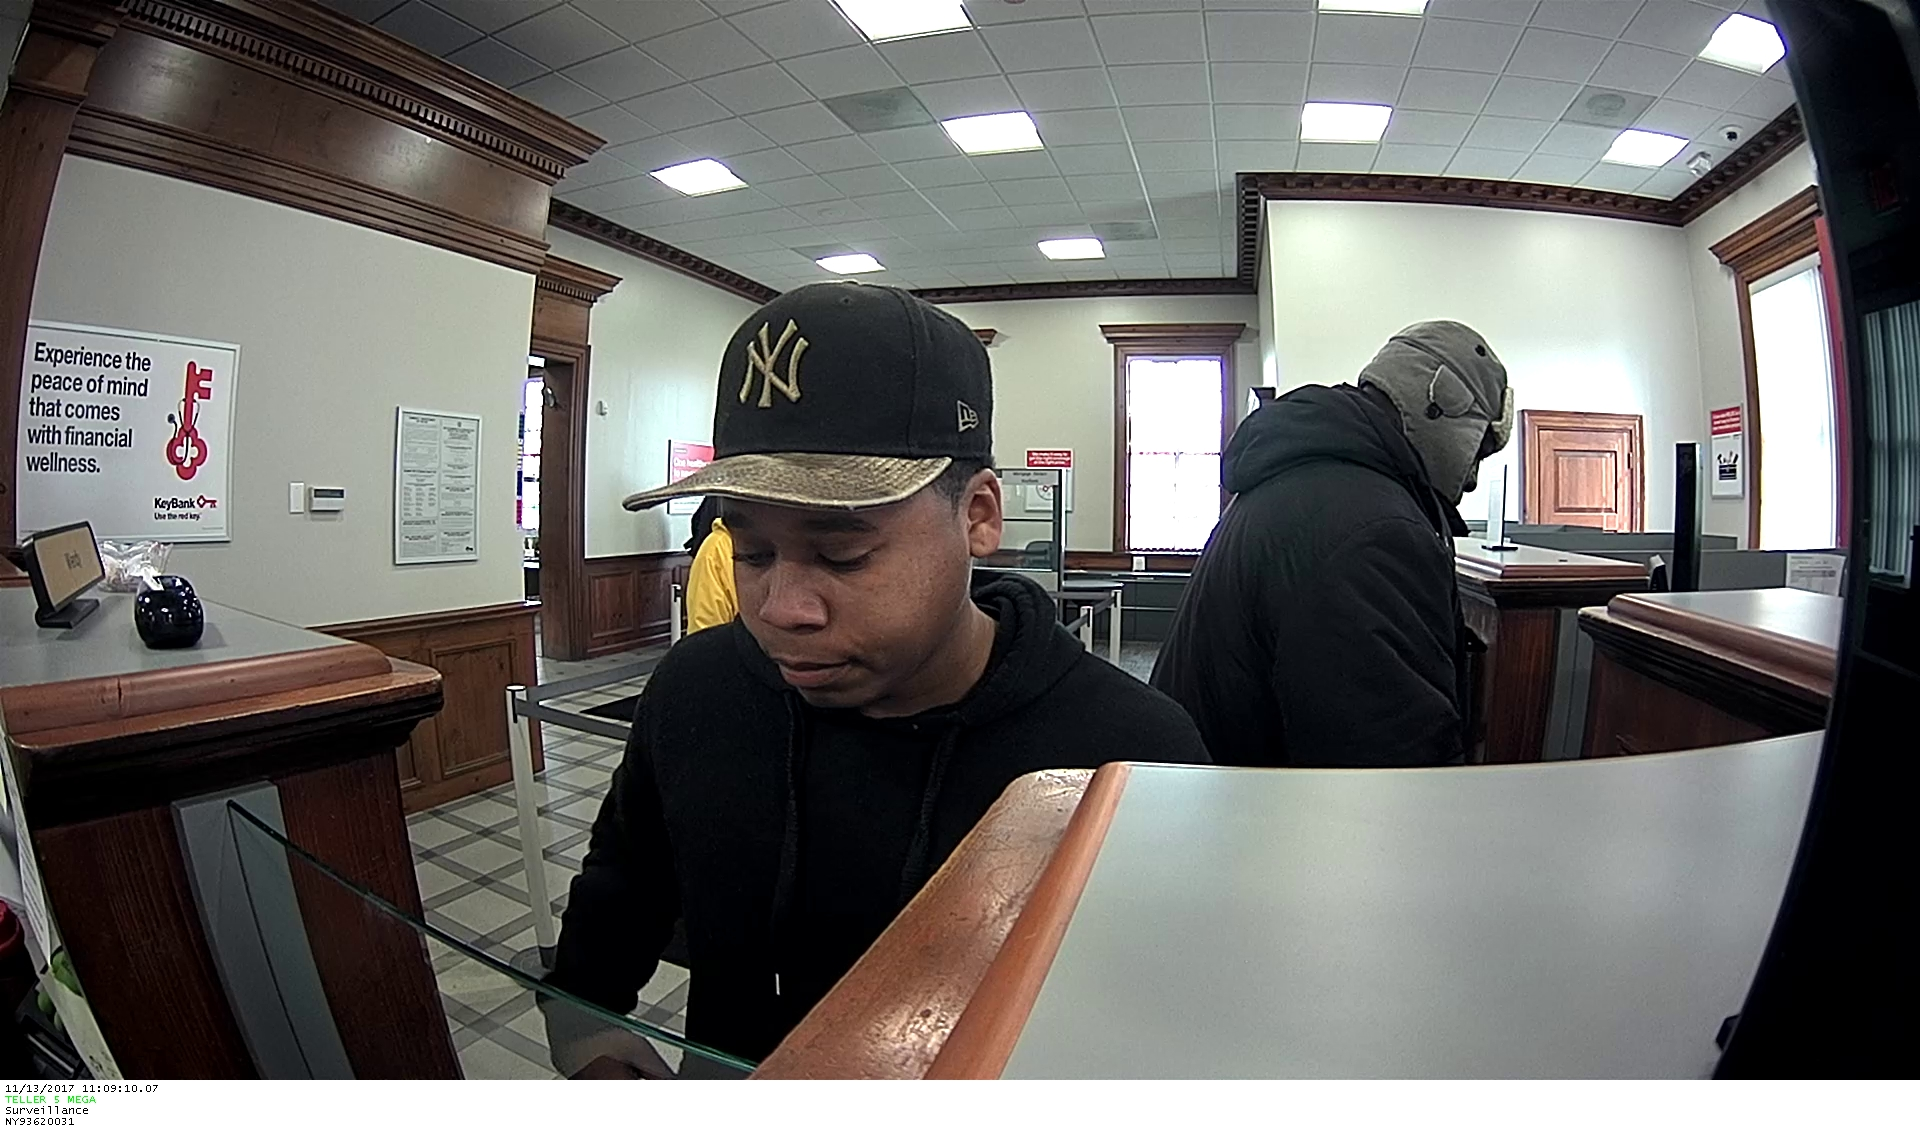 Police said the Key Bank on University Avenue was robbed around 11:10 a.m. (Photo: RPD)